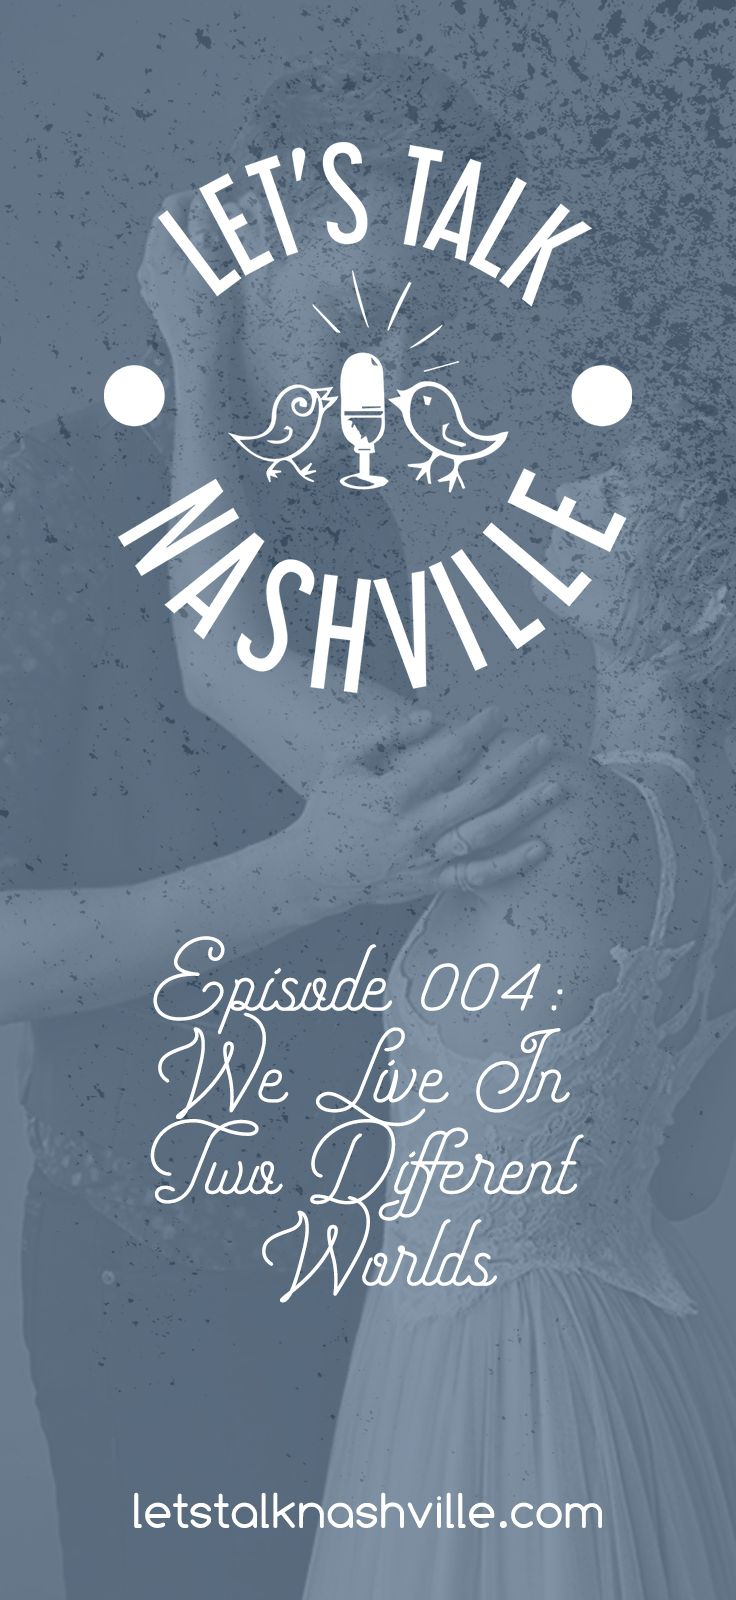 Podcast Episode 004: We Live in Two Different Worlds | Let's Talk Nashville | Nashville CMT | Podcast available on iTunes now! Nashville, Nashville TV, Nashville CMT, show, quotes, cast, lennon stella, fashion, galleries, clare bowen, love, articles, news, country music, chip charles esten